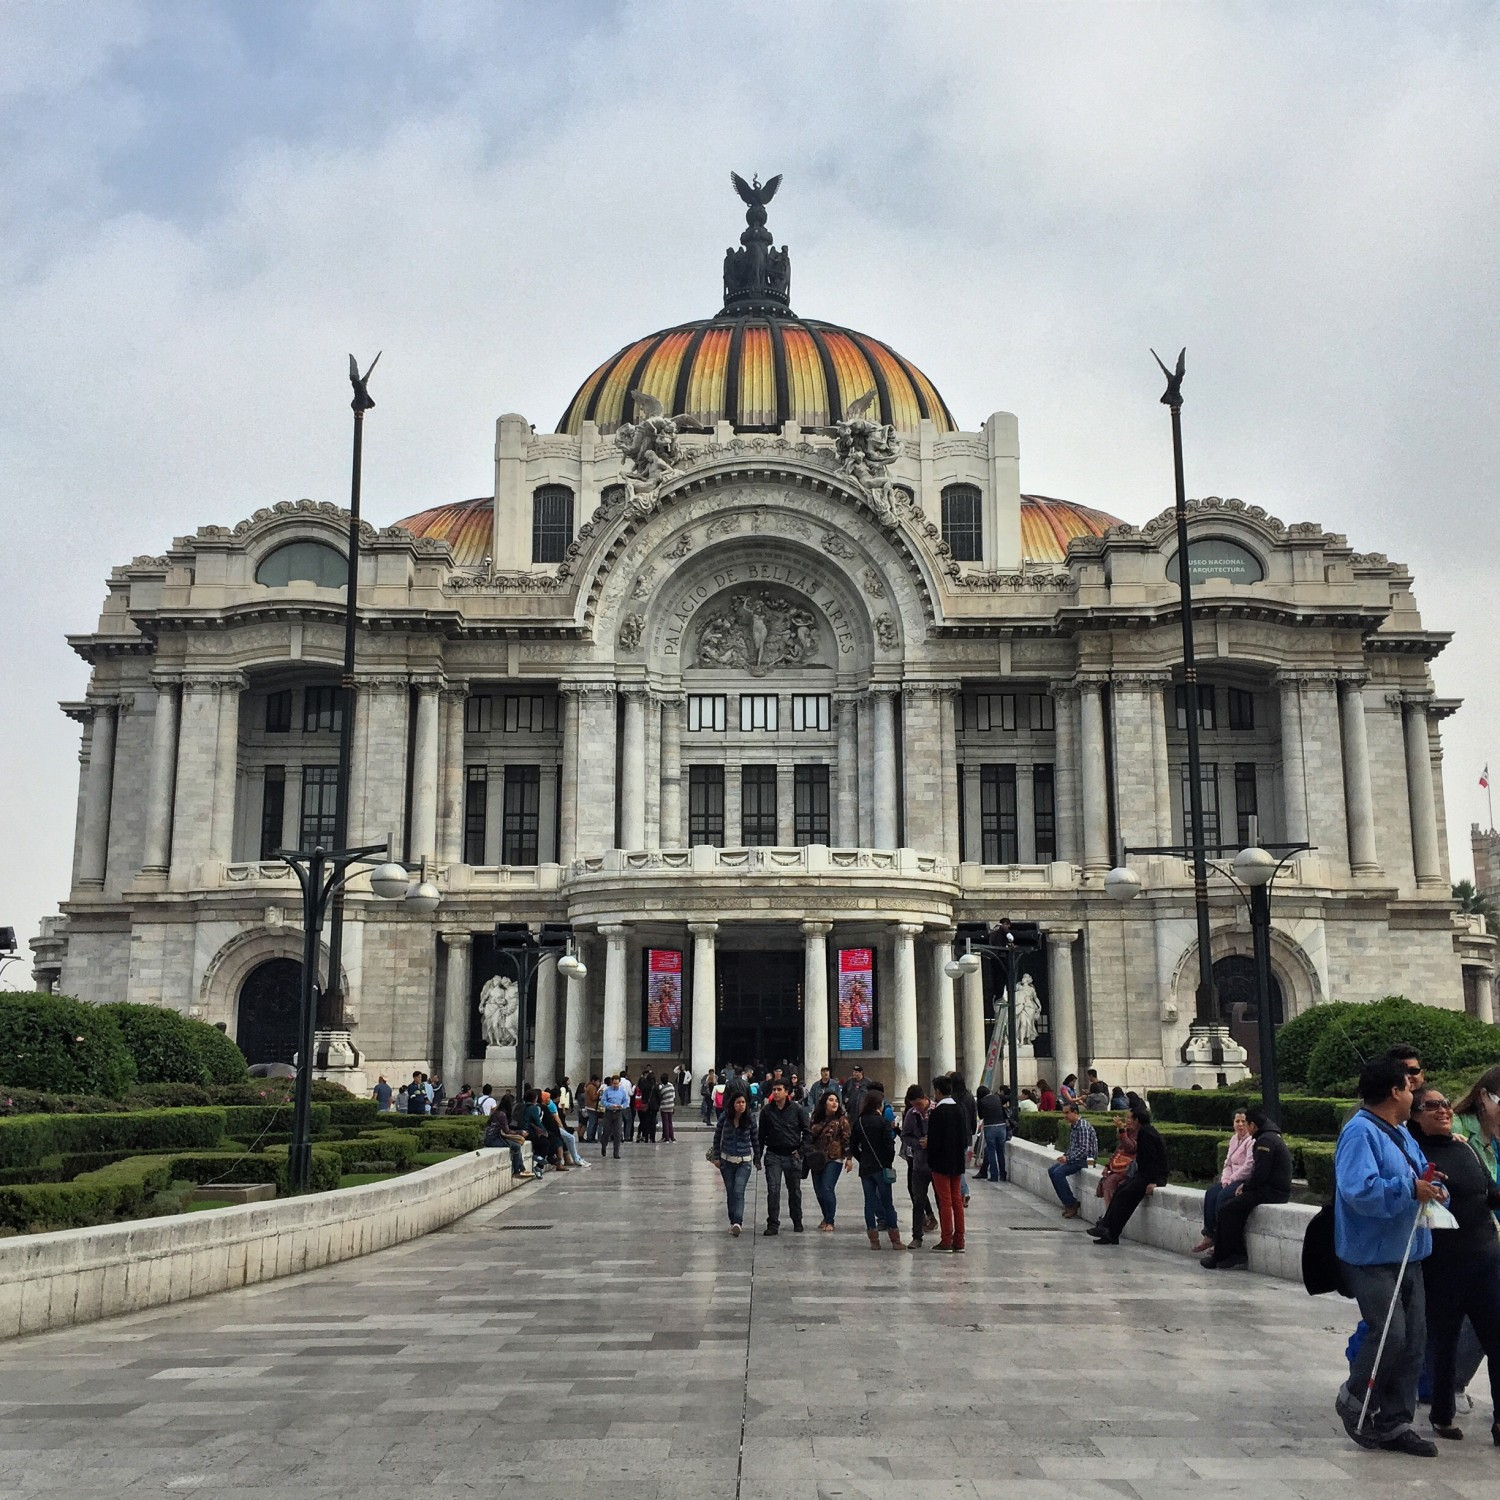 Palacio de bellas artes Mexico City